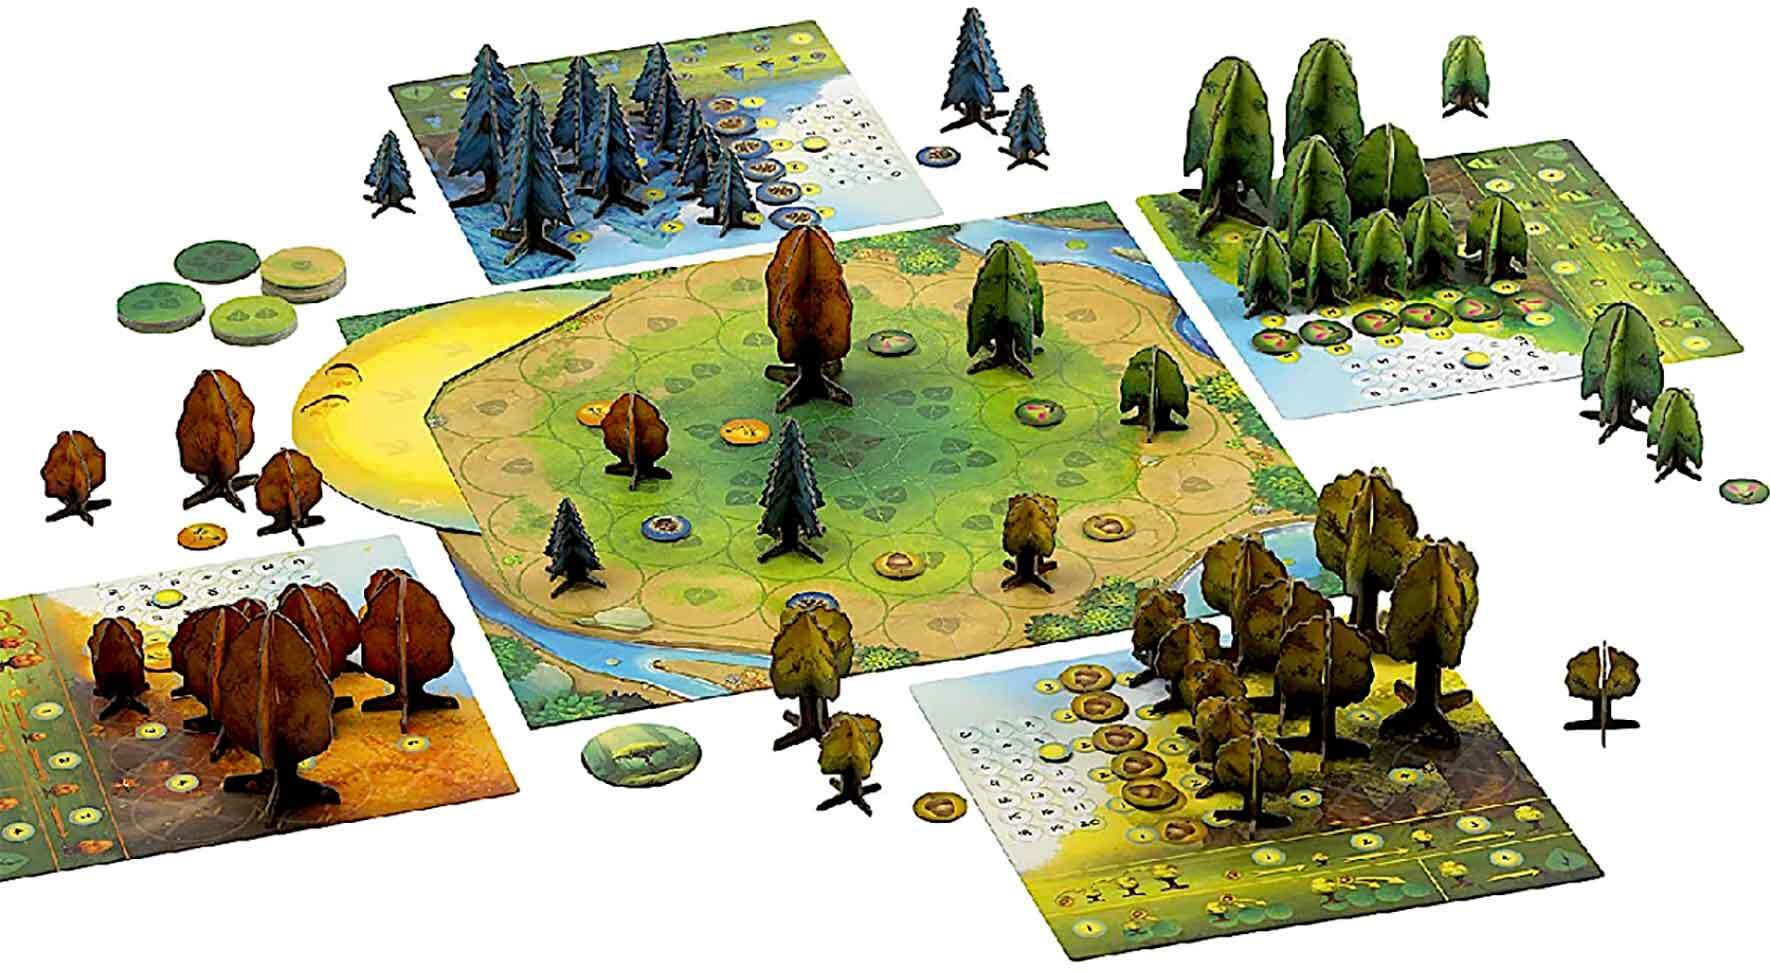 A board game with cut cardboard standing trees, grassy paths and streams